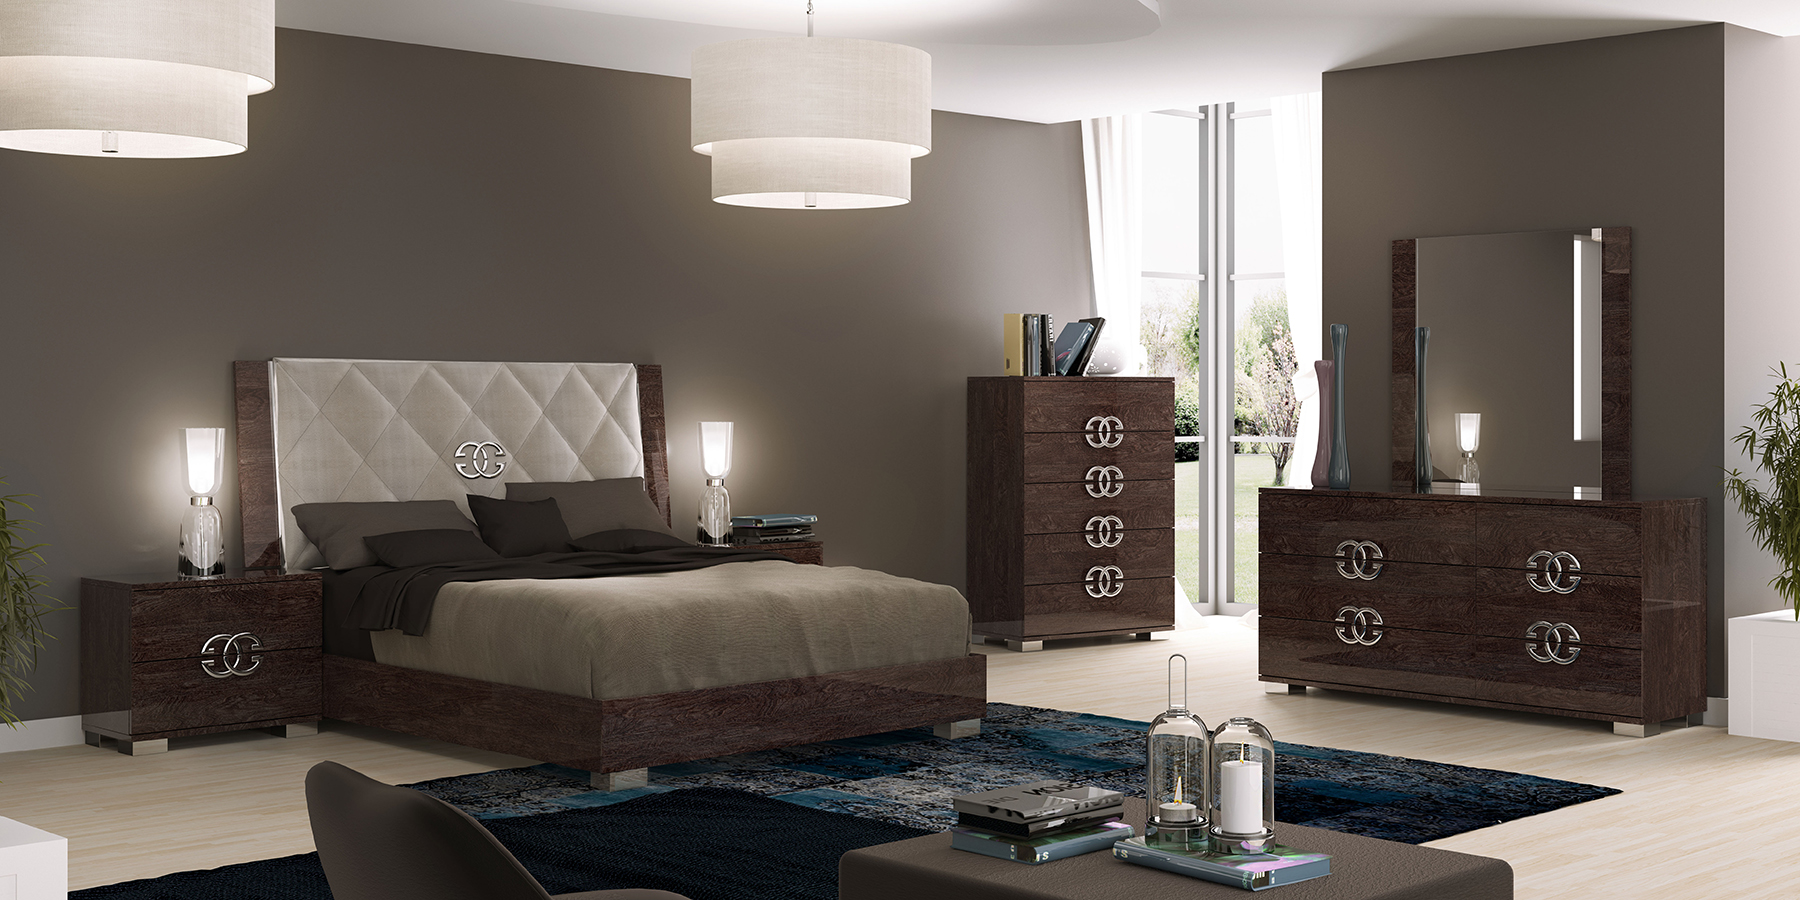 Prestige deluxe modern bedrooms bedroom furniture - Ontharder prestige ...